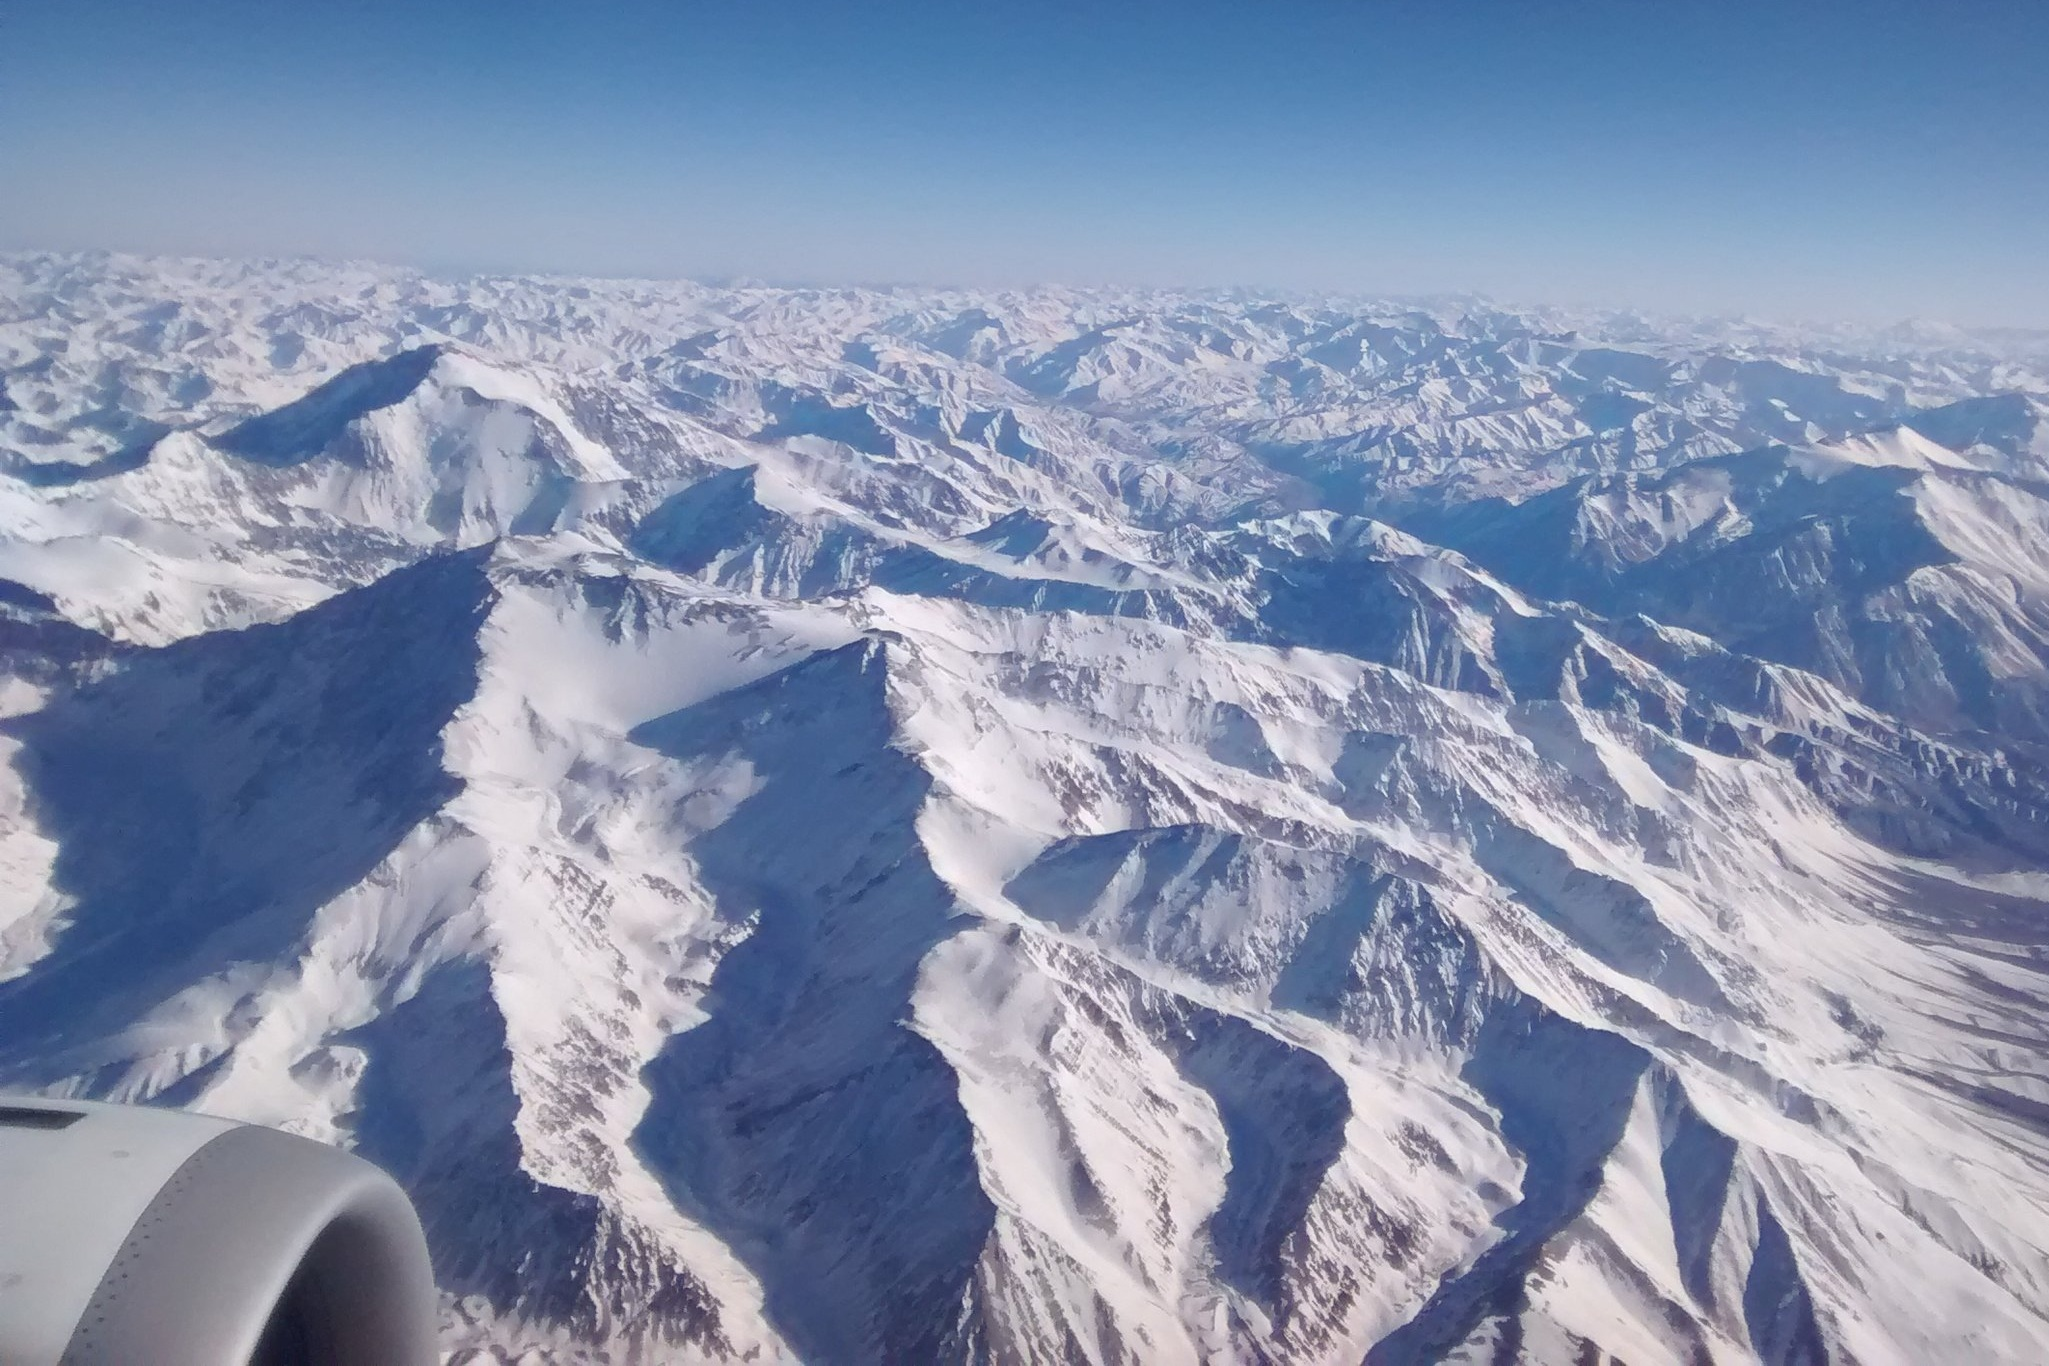 Flying over the Andes Mountains. In some areas, the snowcaps are disappearing.